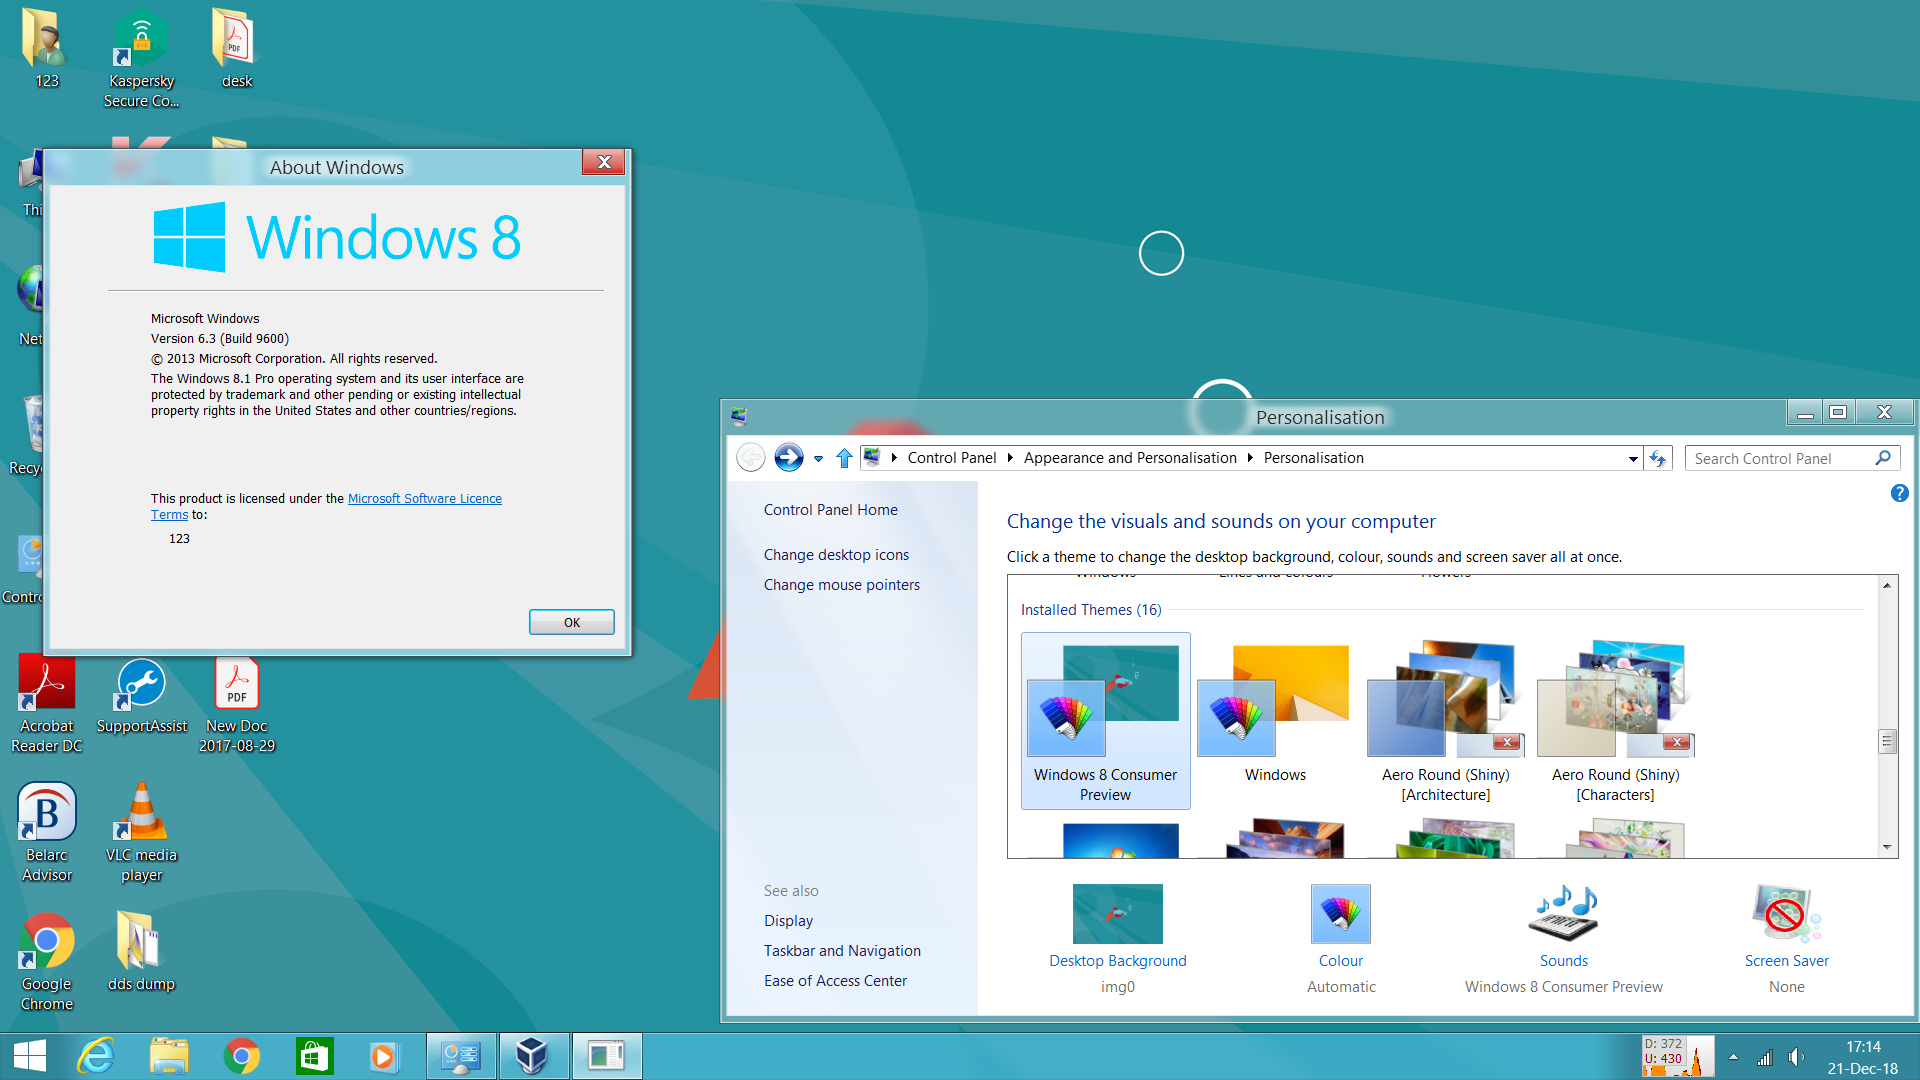 Windows 8 Consumer Preview Vs For Windows 8 1 1 By